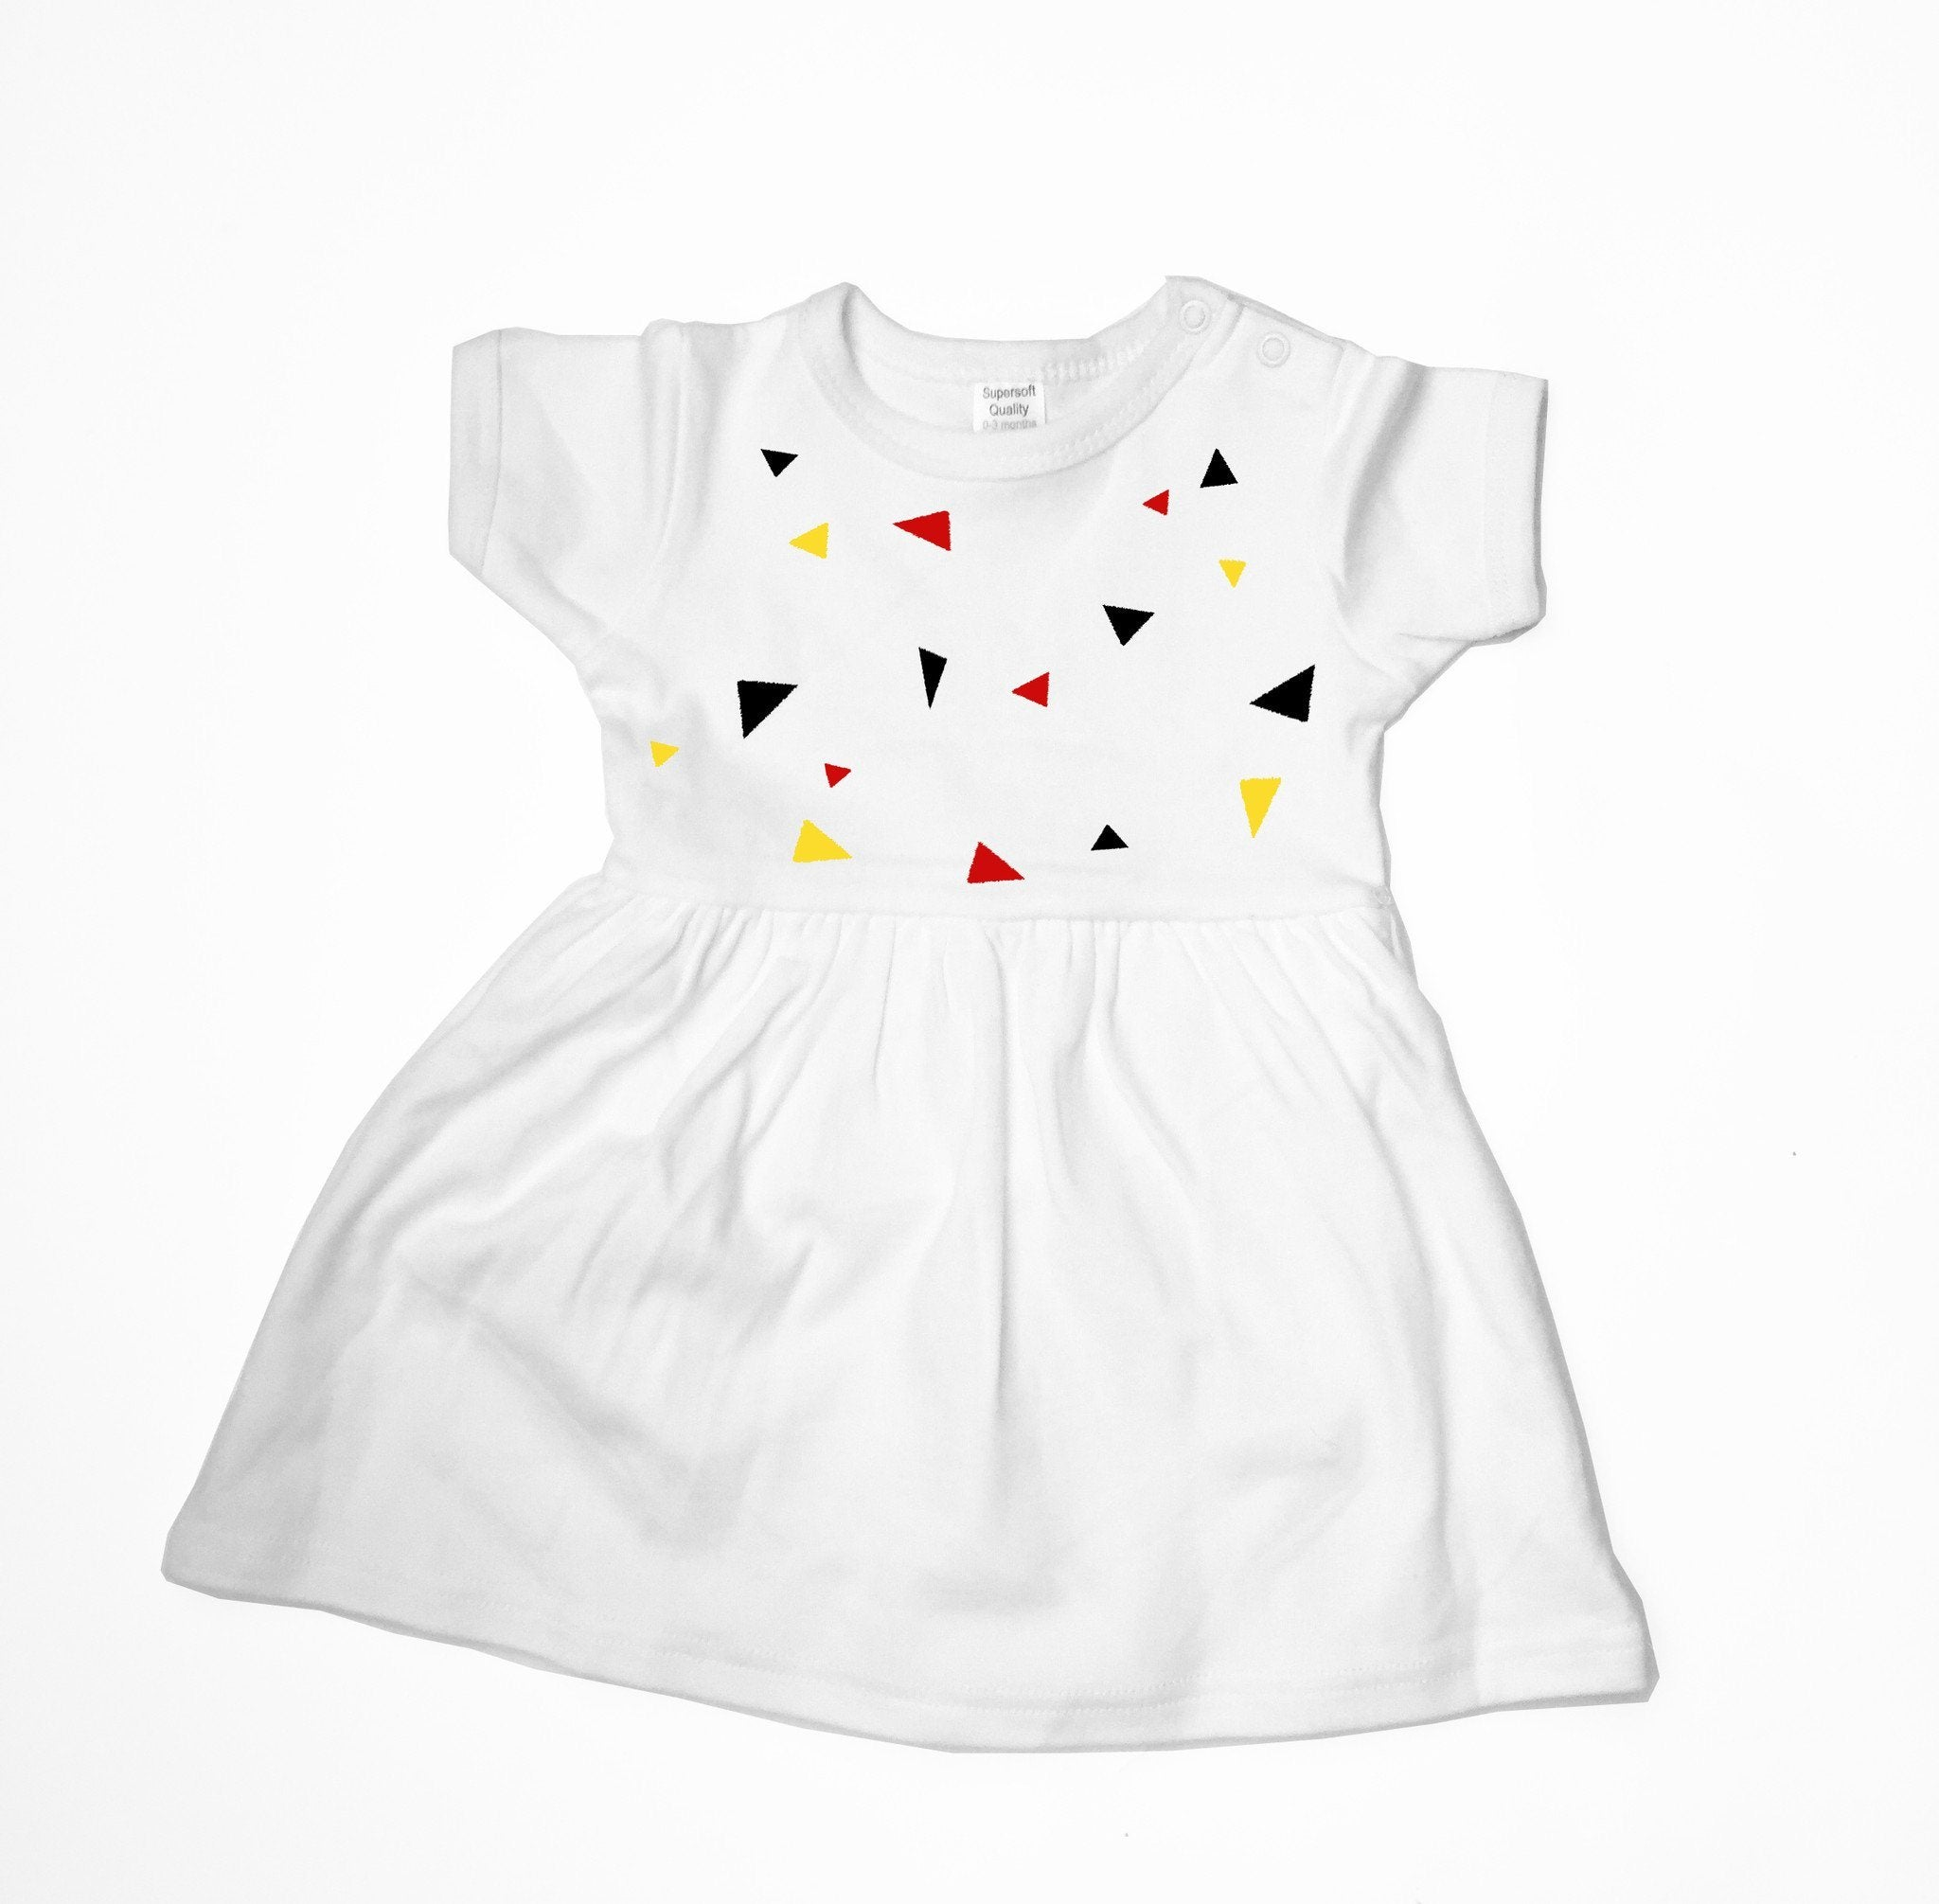 Baby Dress - Colourful Triangles Baby Dress